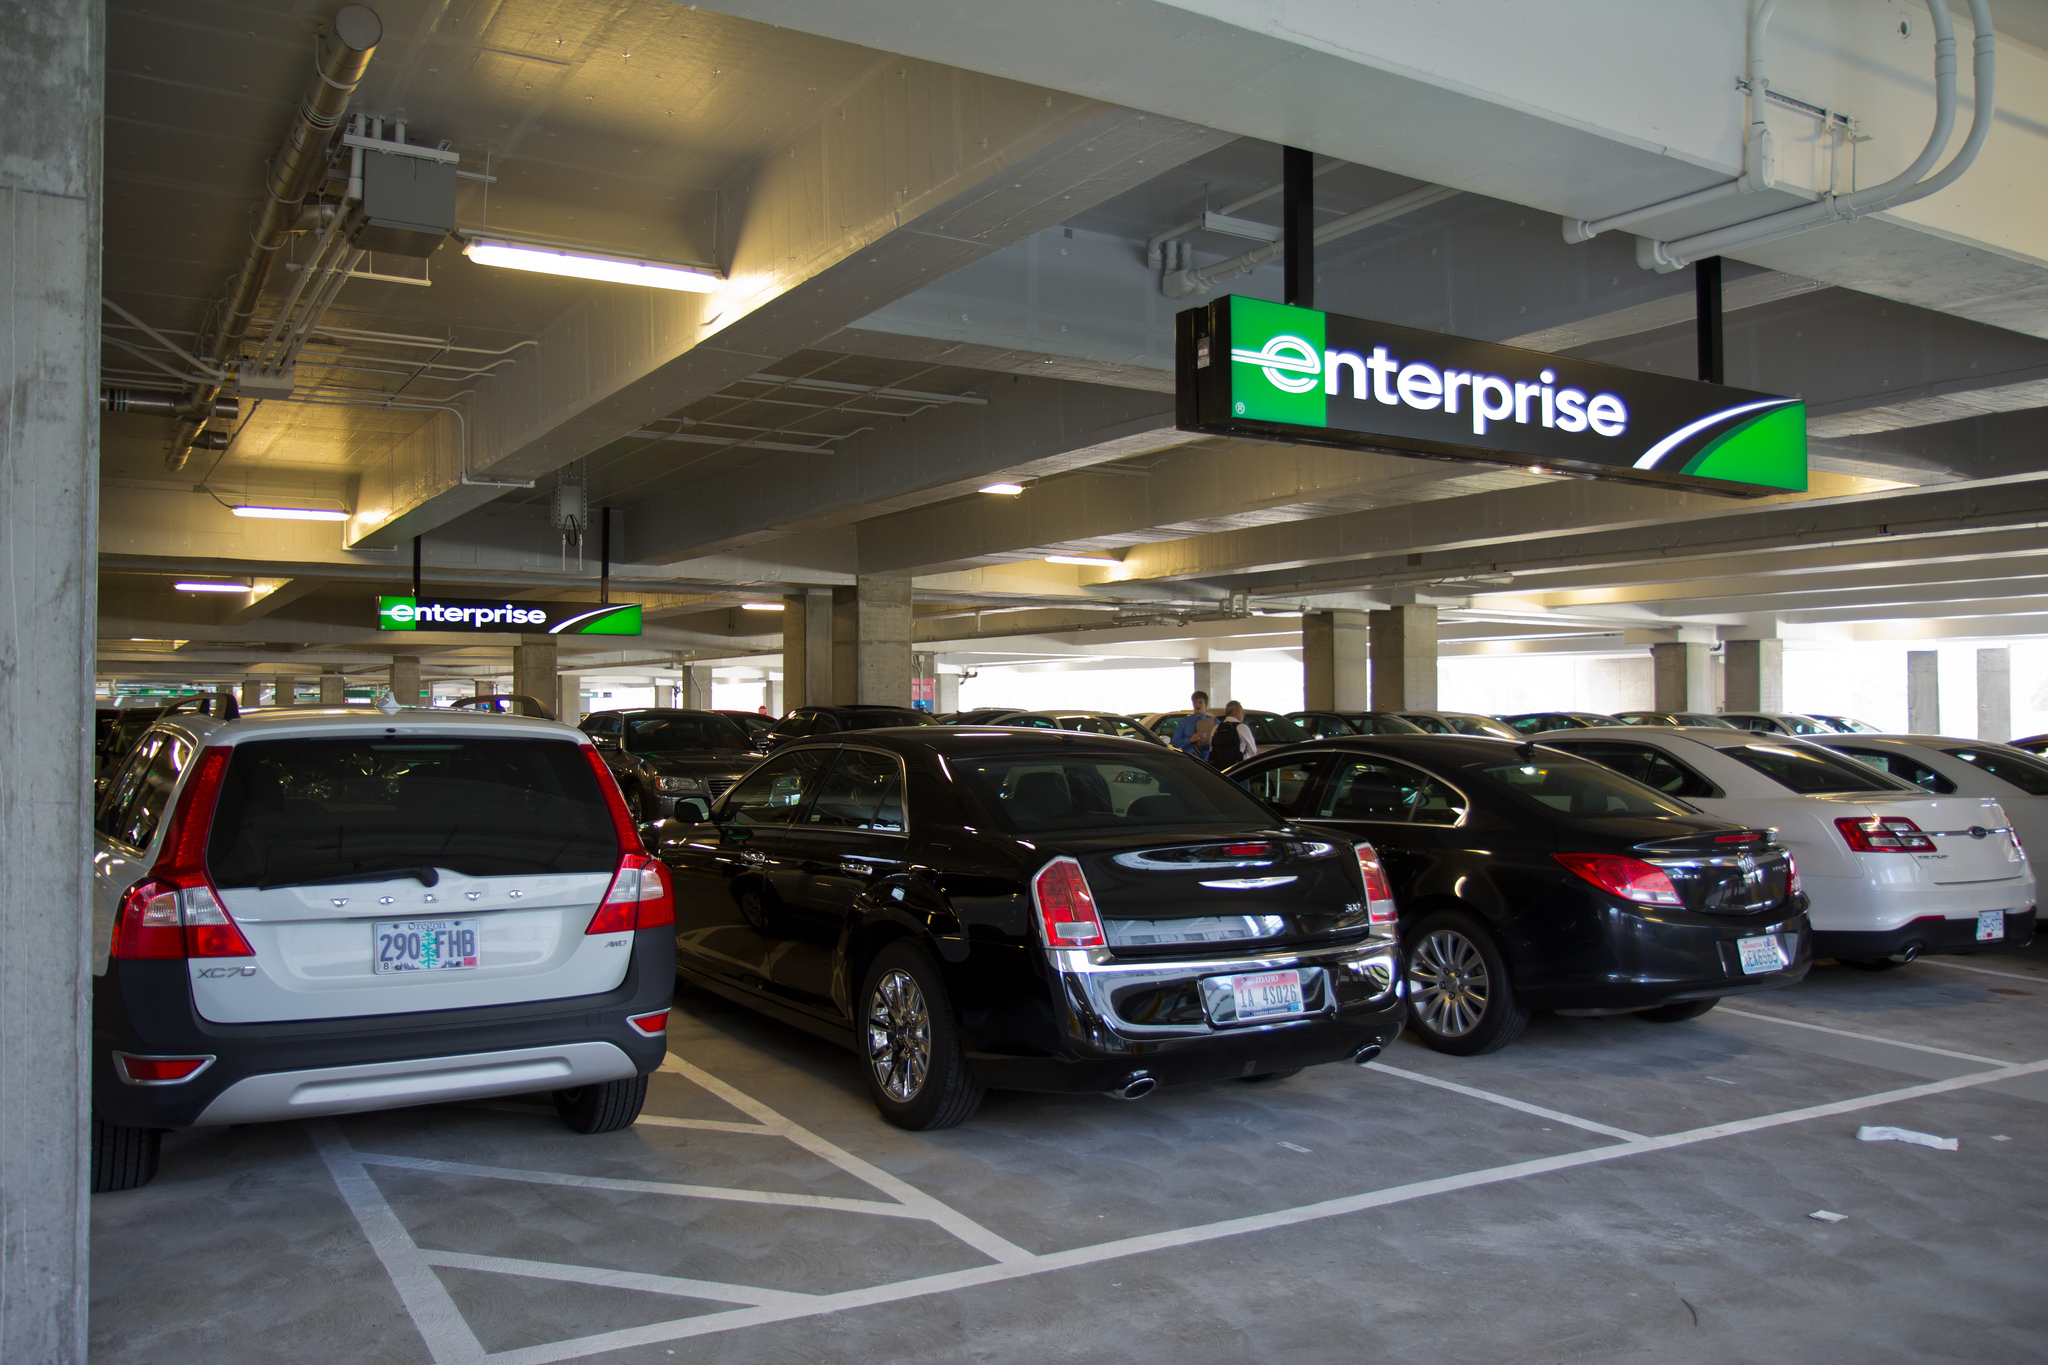 Thrifty Car Rental In Seattle Airport